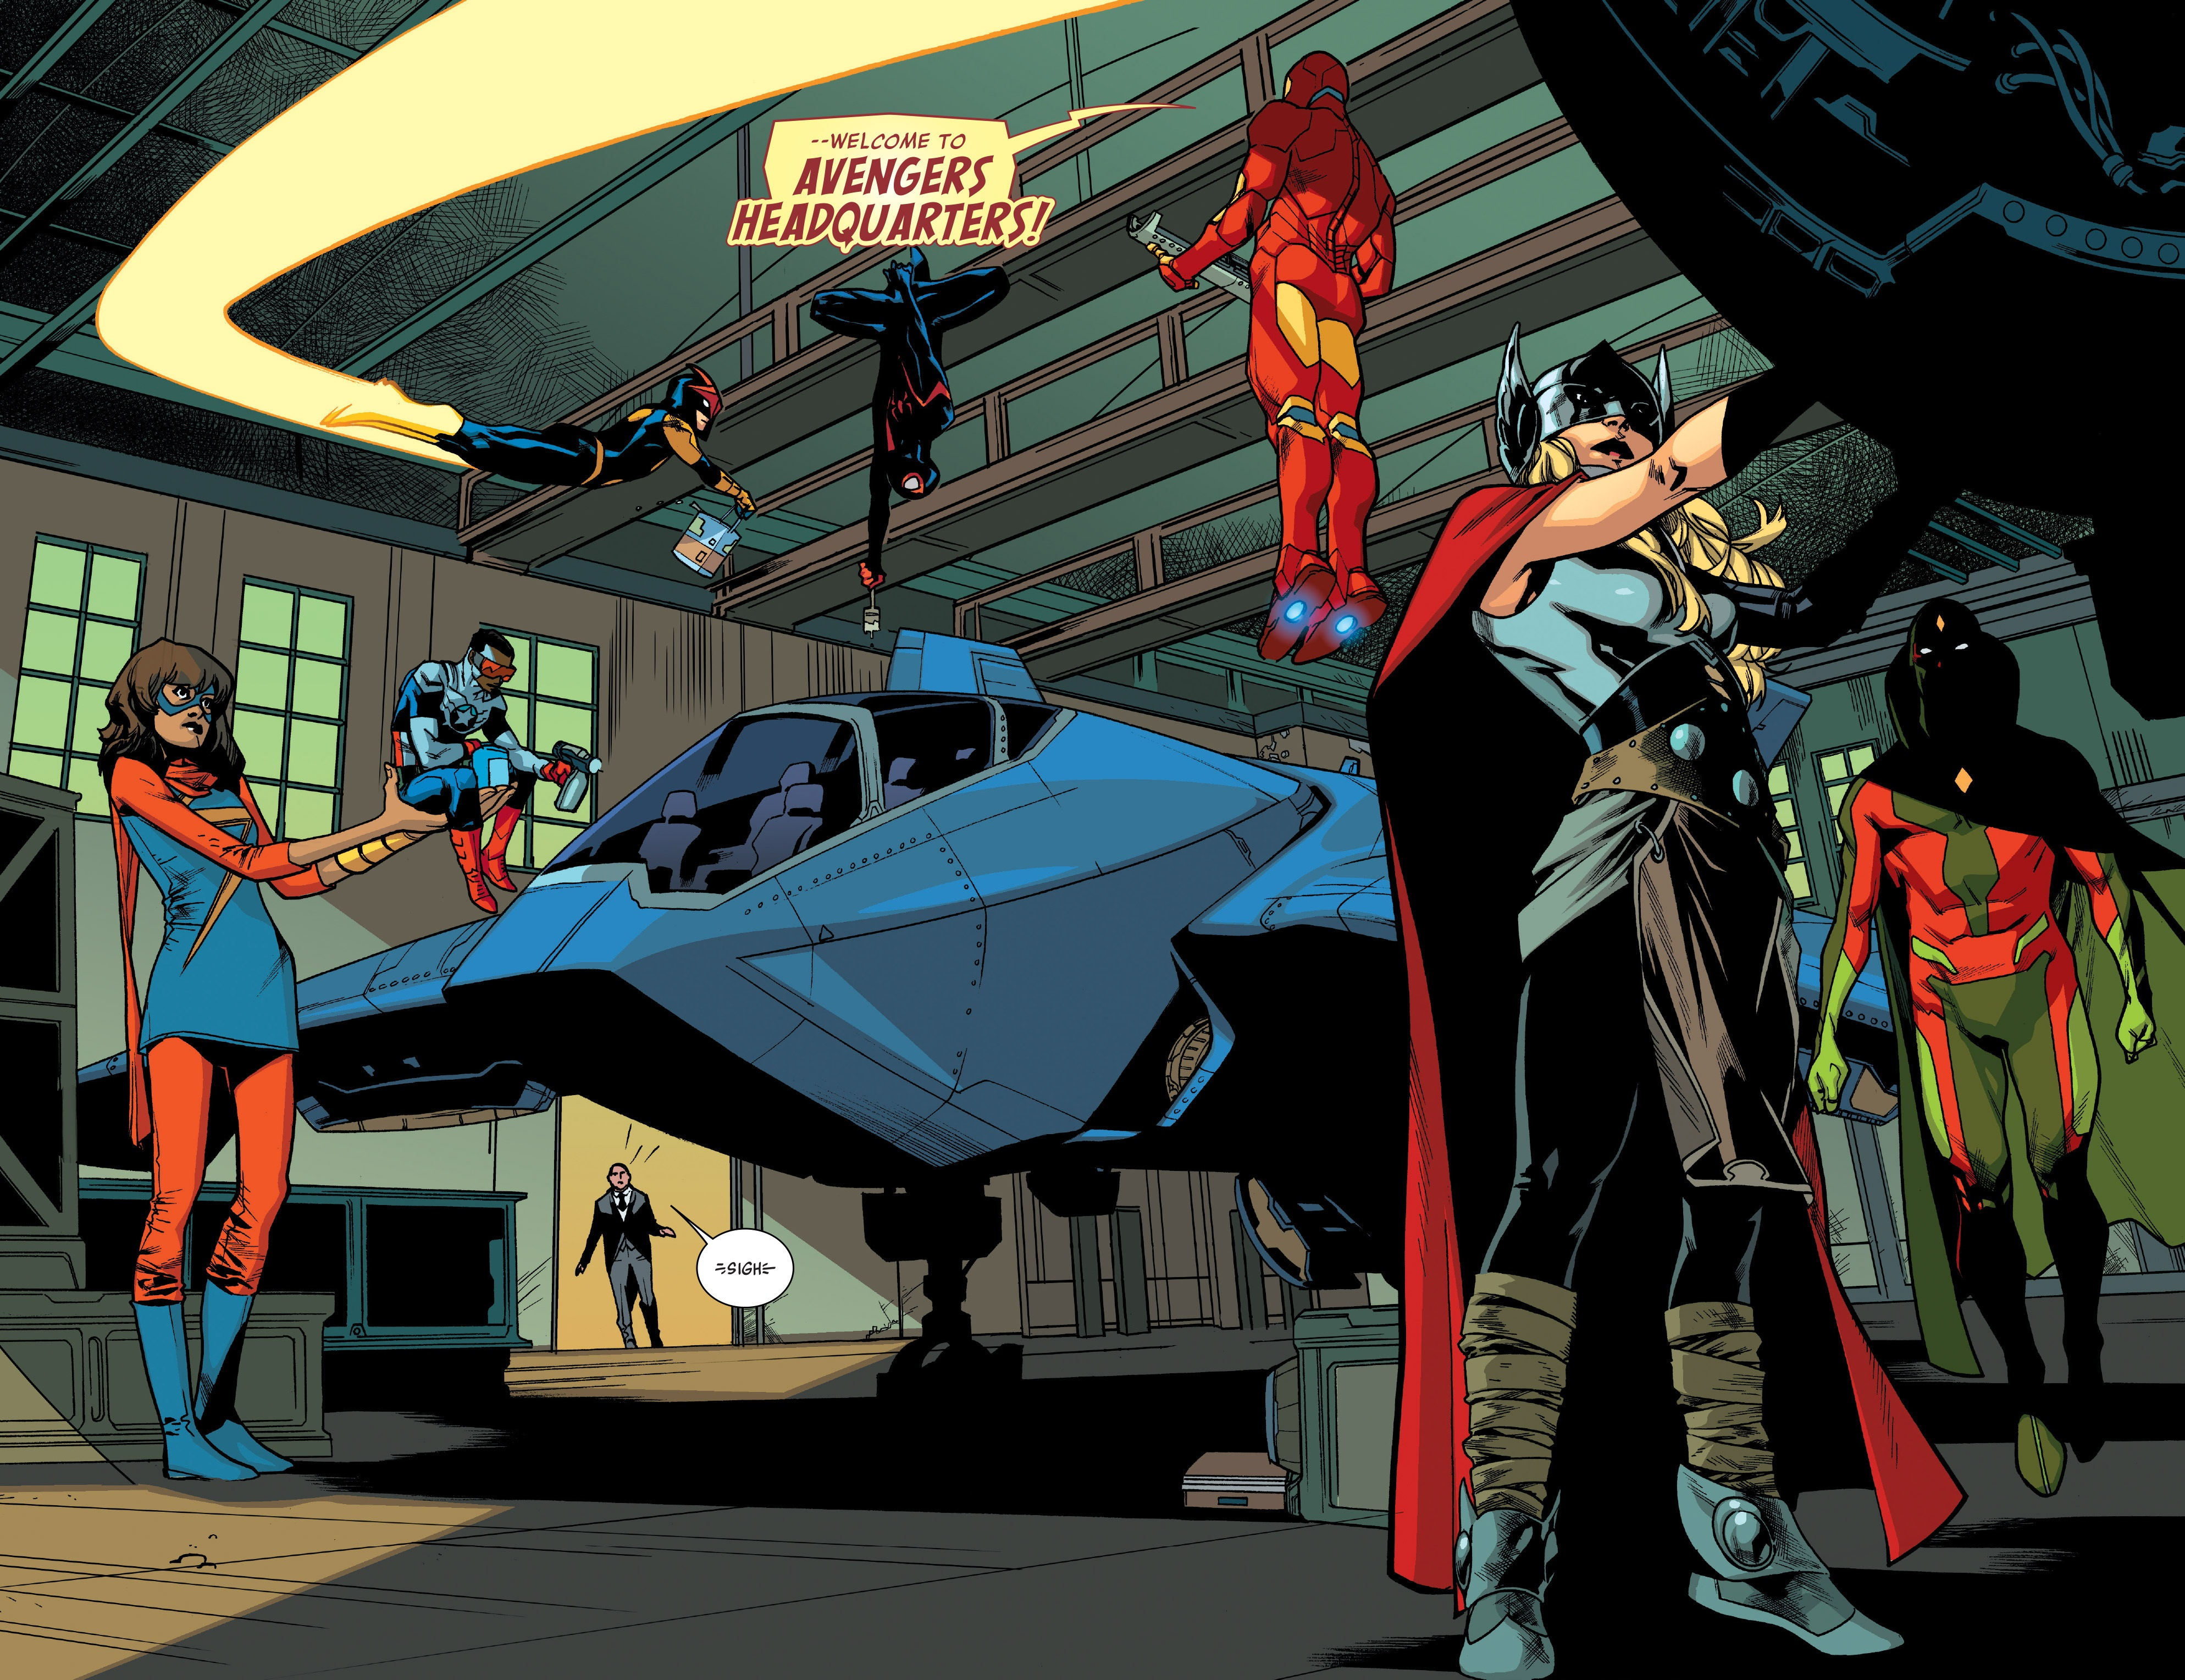 Avengers (Earth-616) from All-New, All-Different Avengers Vol 1 4 001.jpg